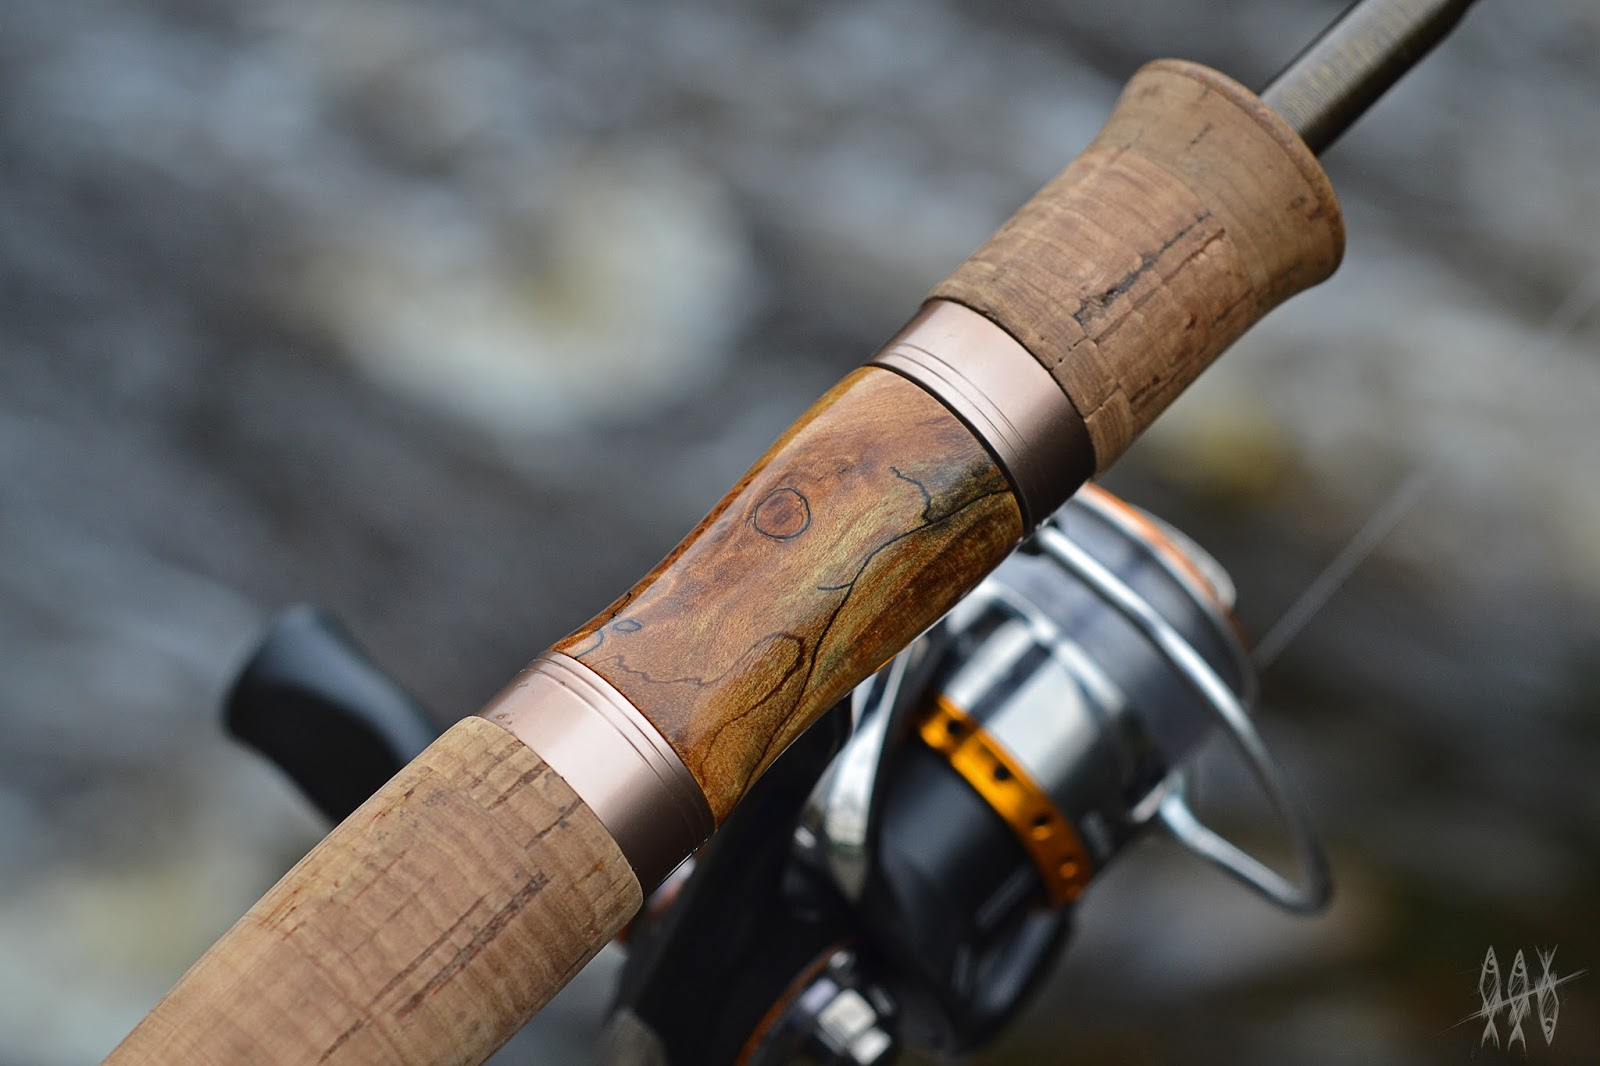 Lure mad smith dragonbait trout rod review